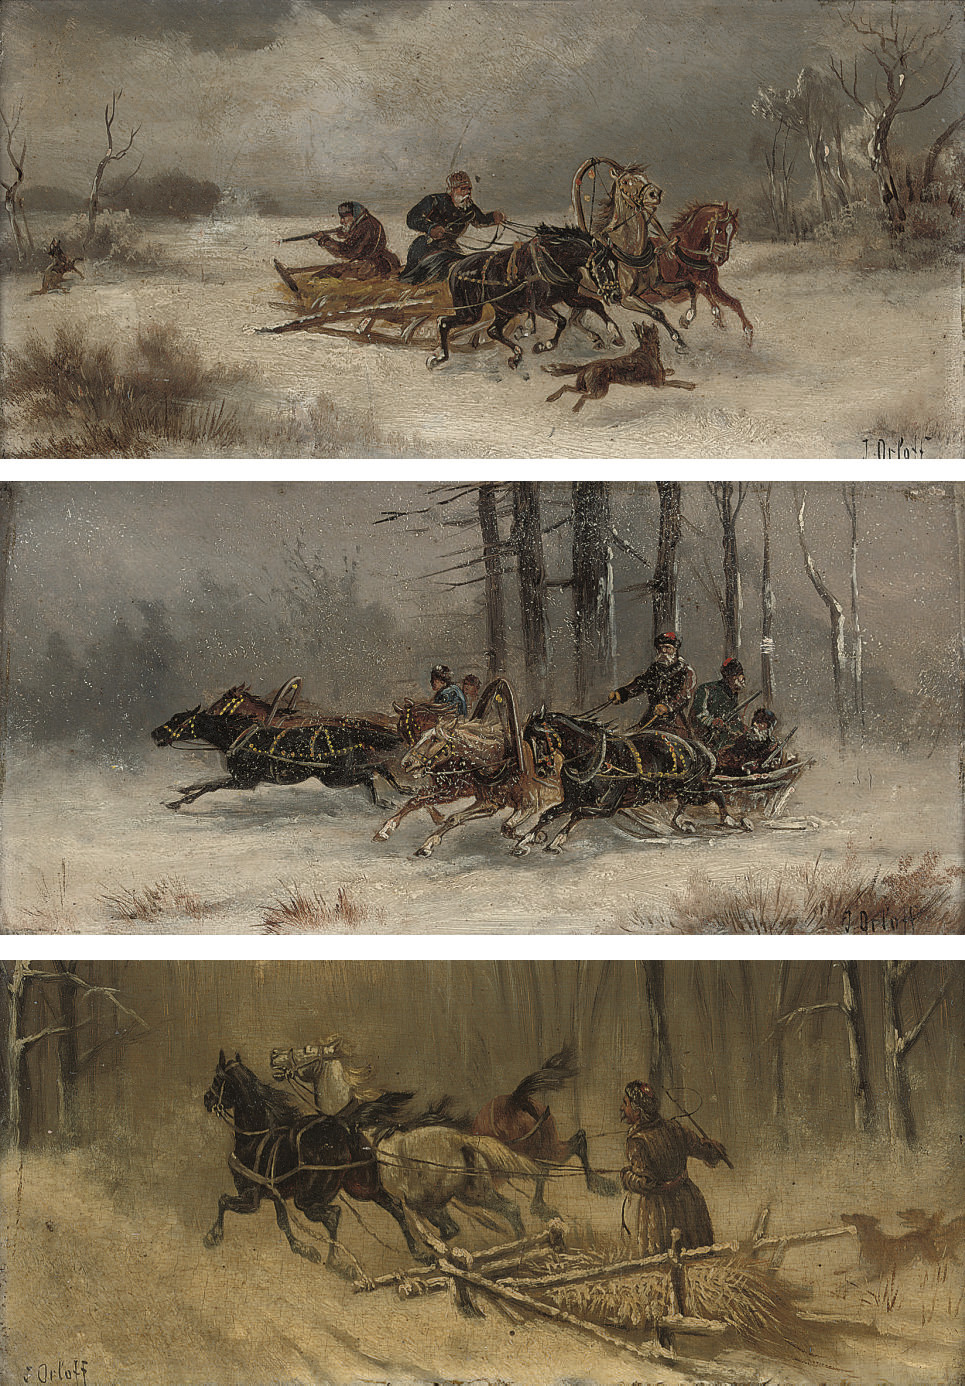 Running from the wolves; Running through the forest; and Troikas in the snow